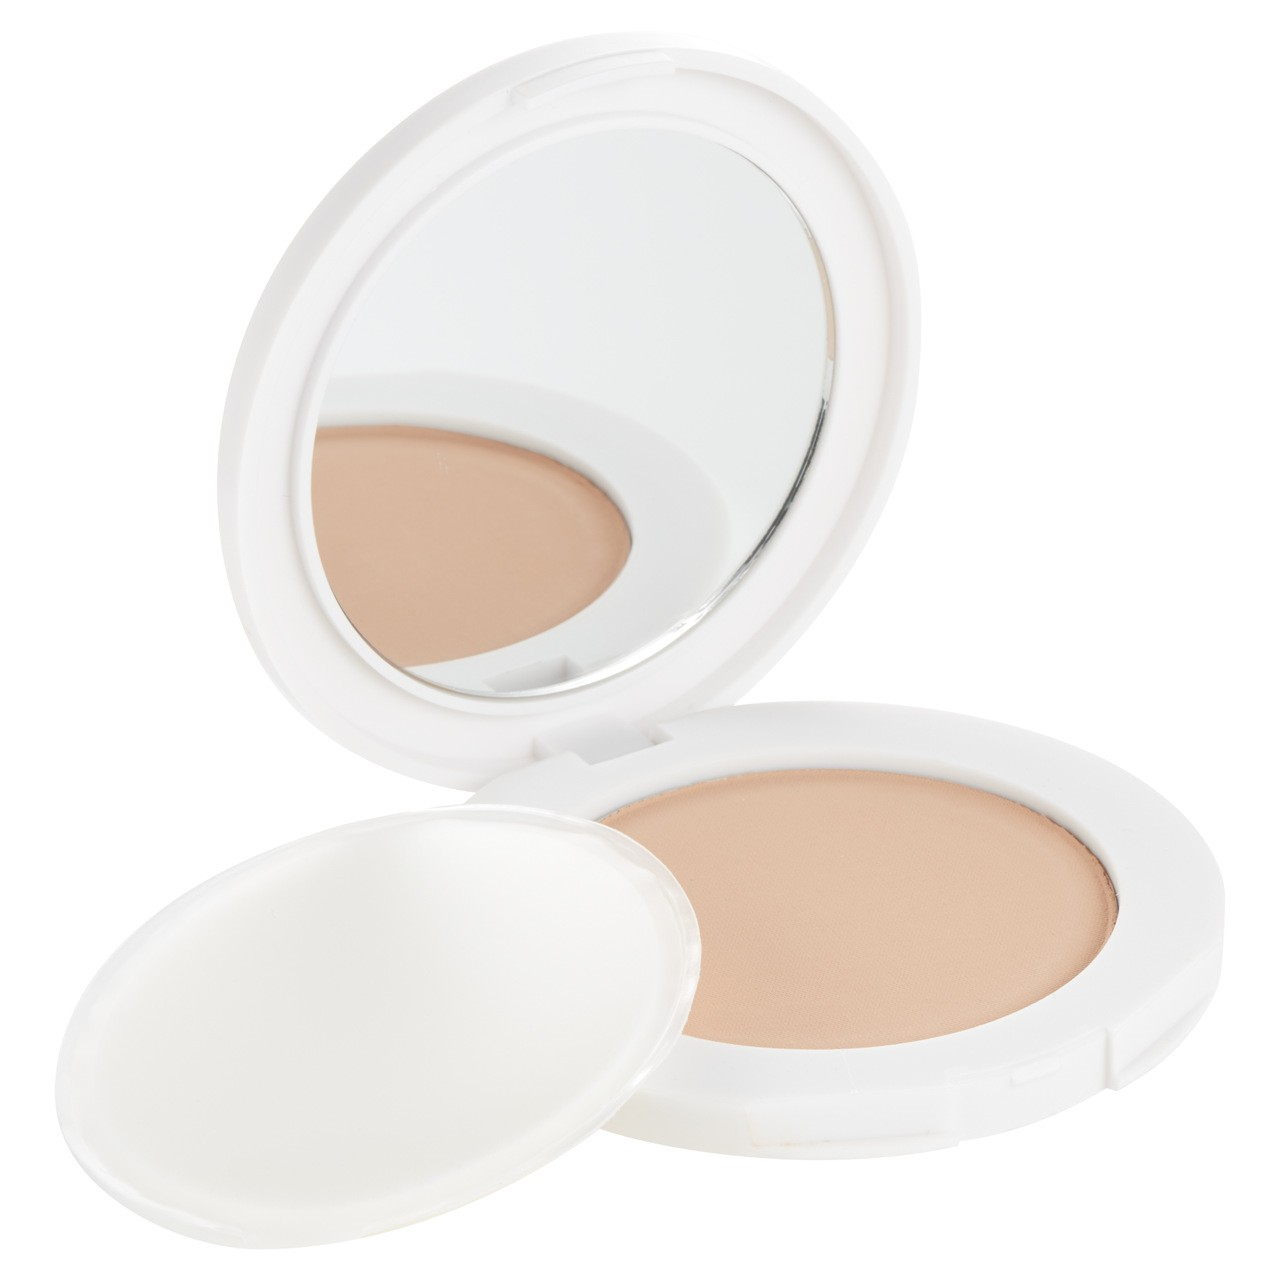 Maybelline - Pó Compacto -  40 - Fawn